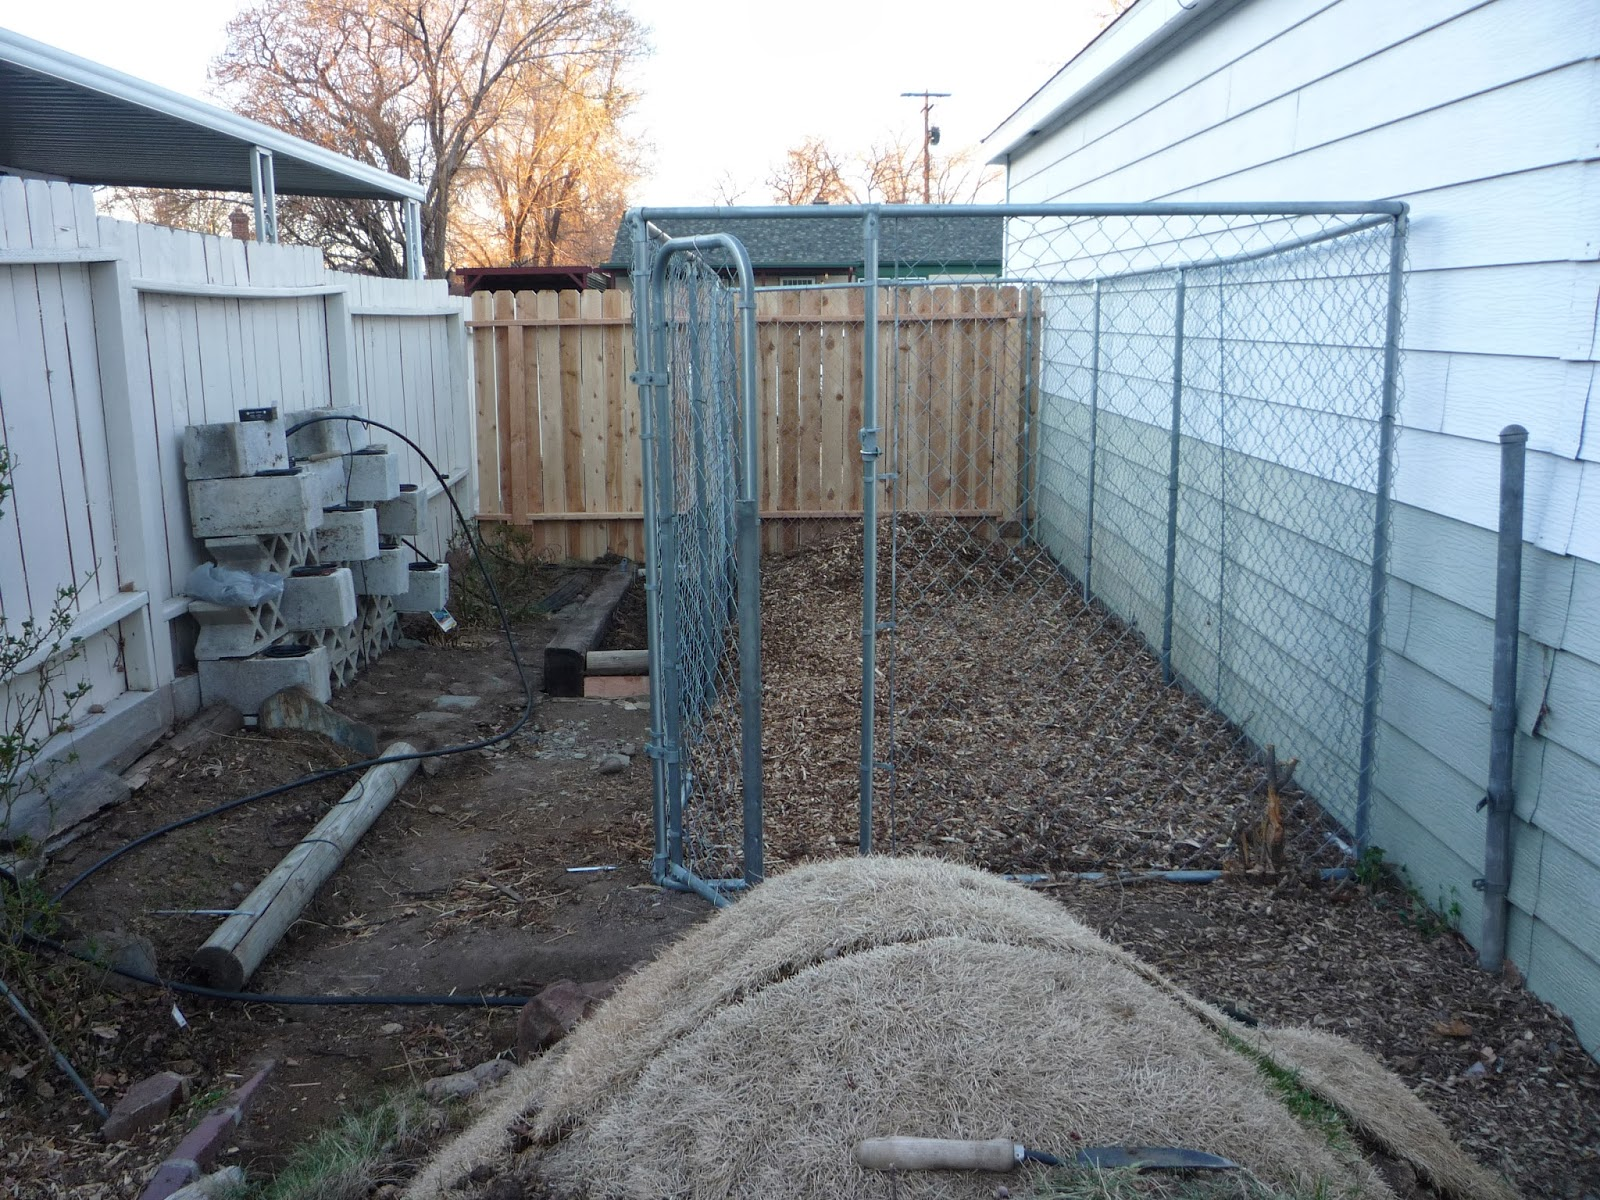 Once The Dog Run Was Up And Skinned With Chain Link We Constructed A Little Planter Four Railroad Ties Three To Form Tall Back Hopefully